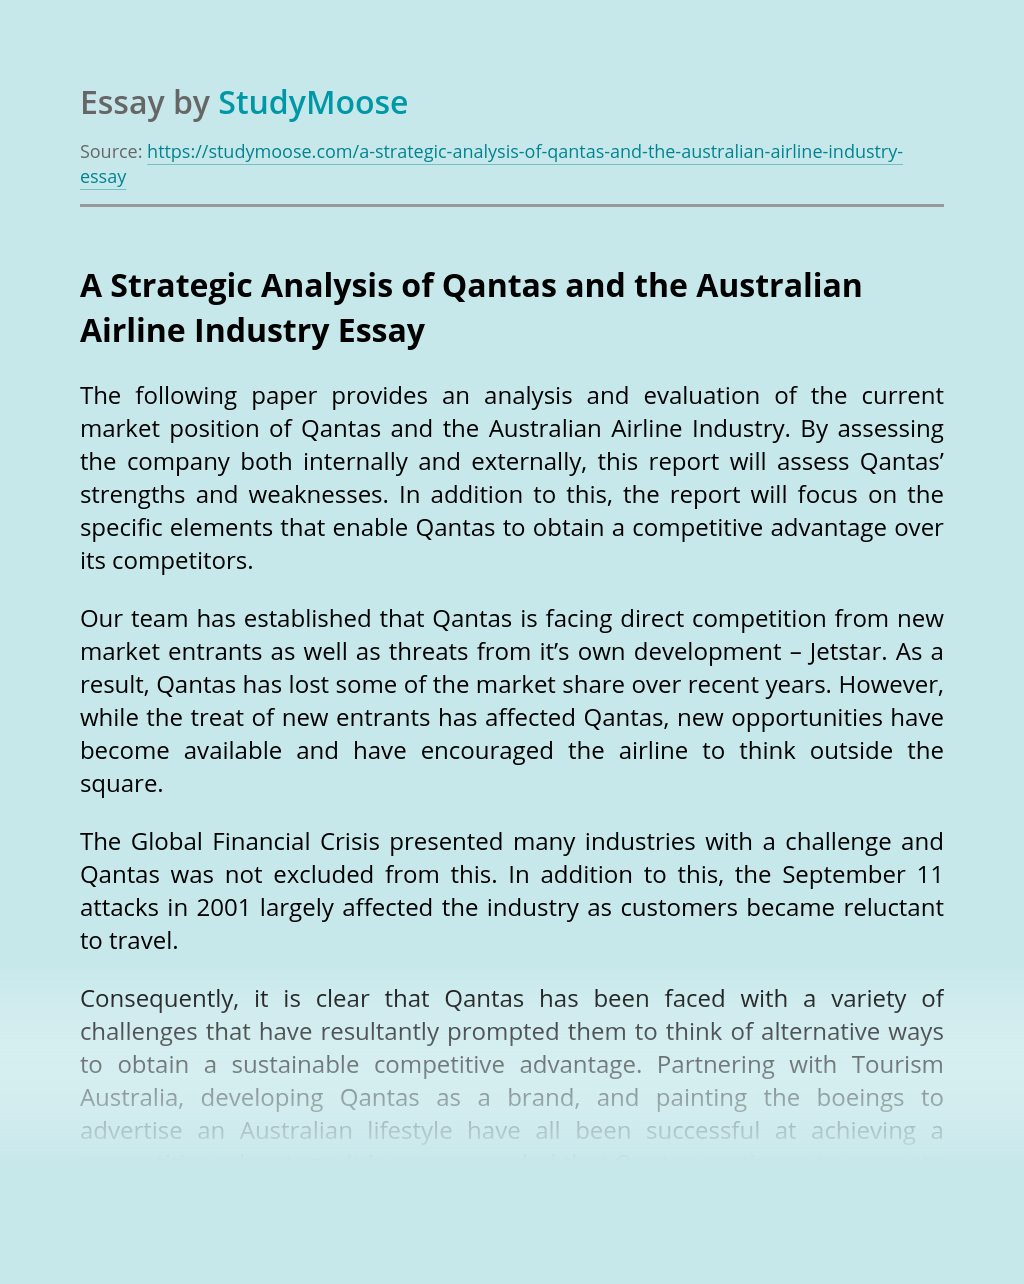 A Strategic Analysis of Qantas and the Australian Airline Industry